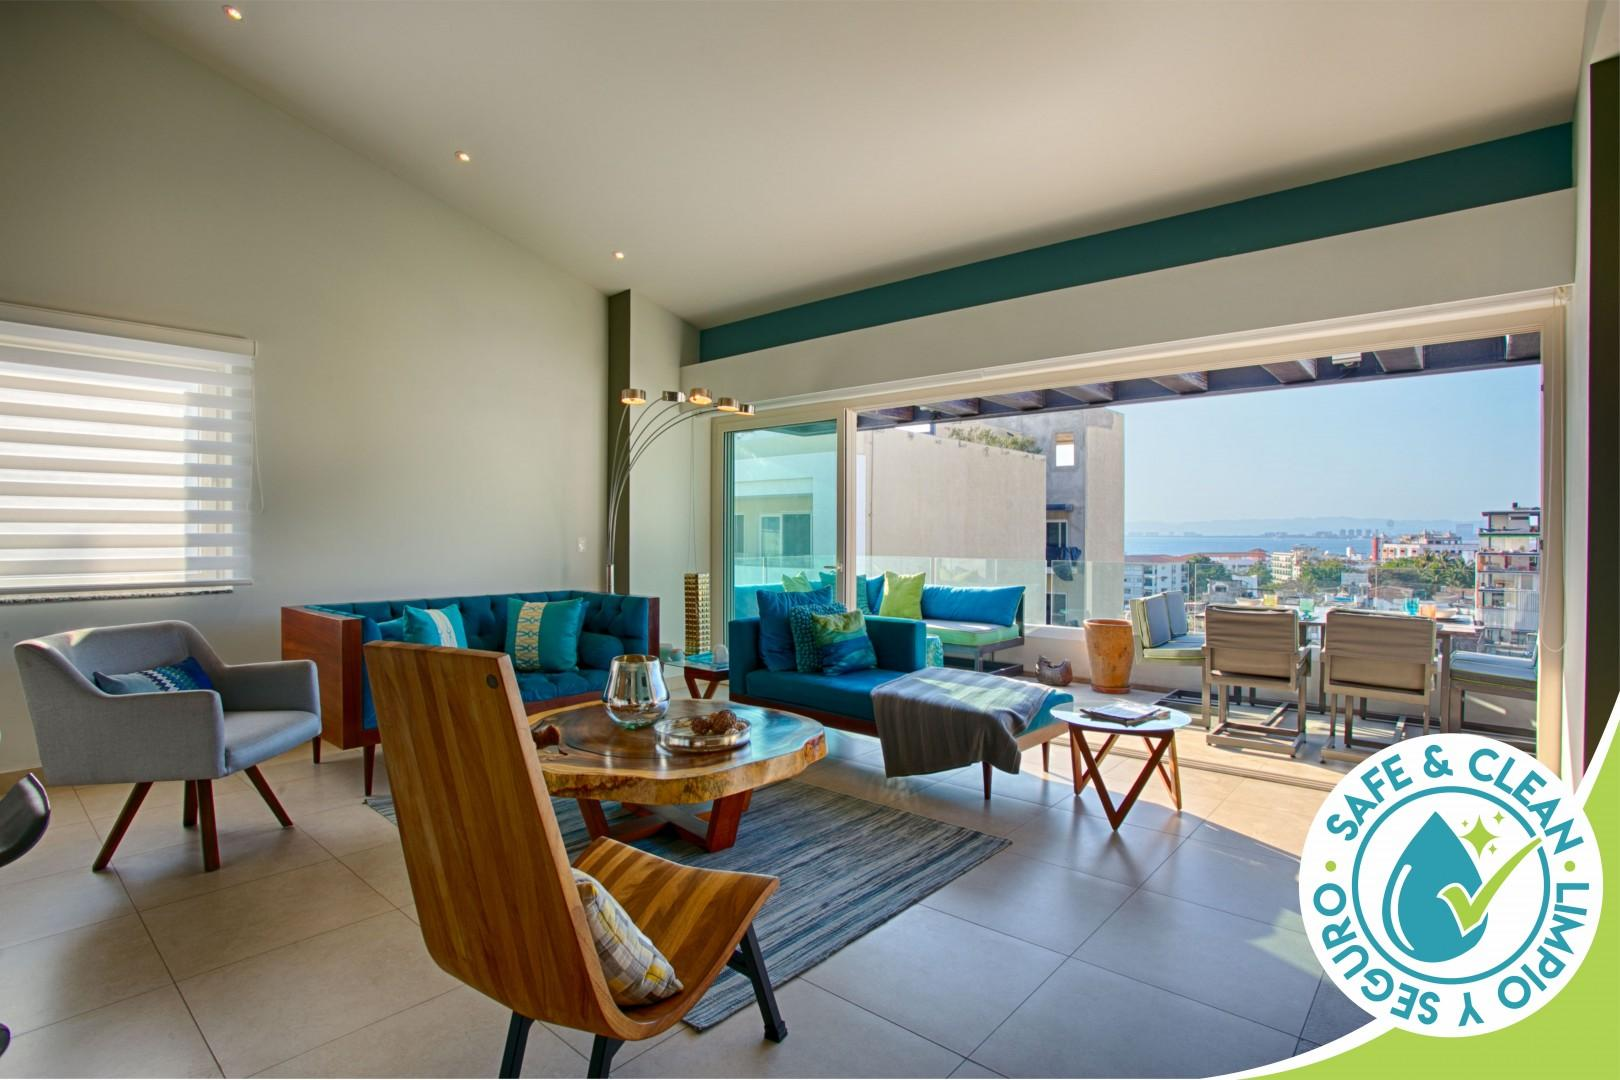 Vaulted Ceiling Penthouse at Zenith in Romantic Zone | Pool, Gym, BBQ